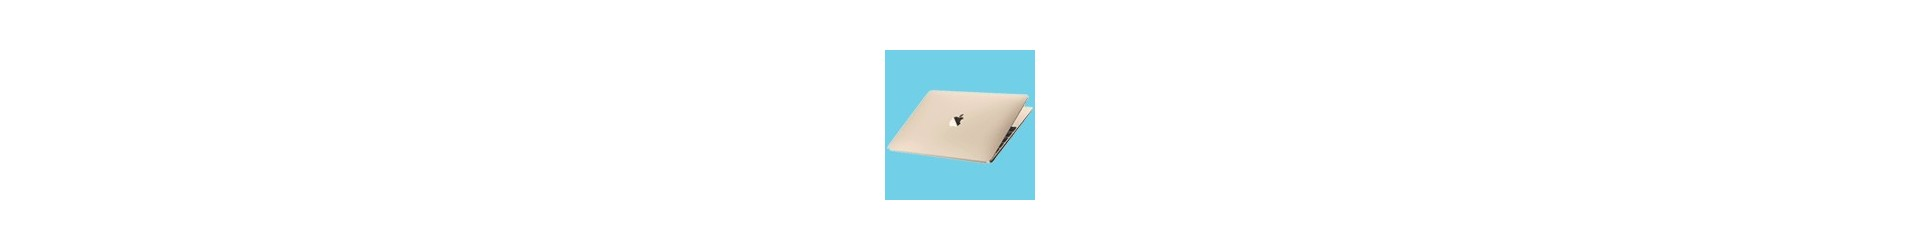 "MacBook 12"" (A1534)"